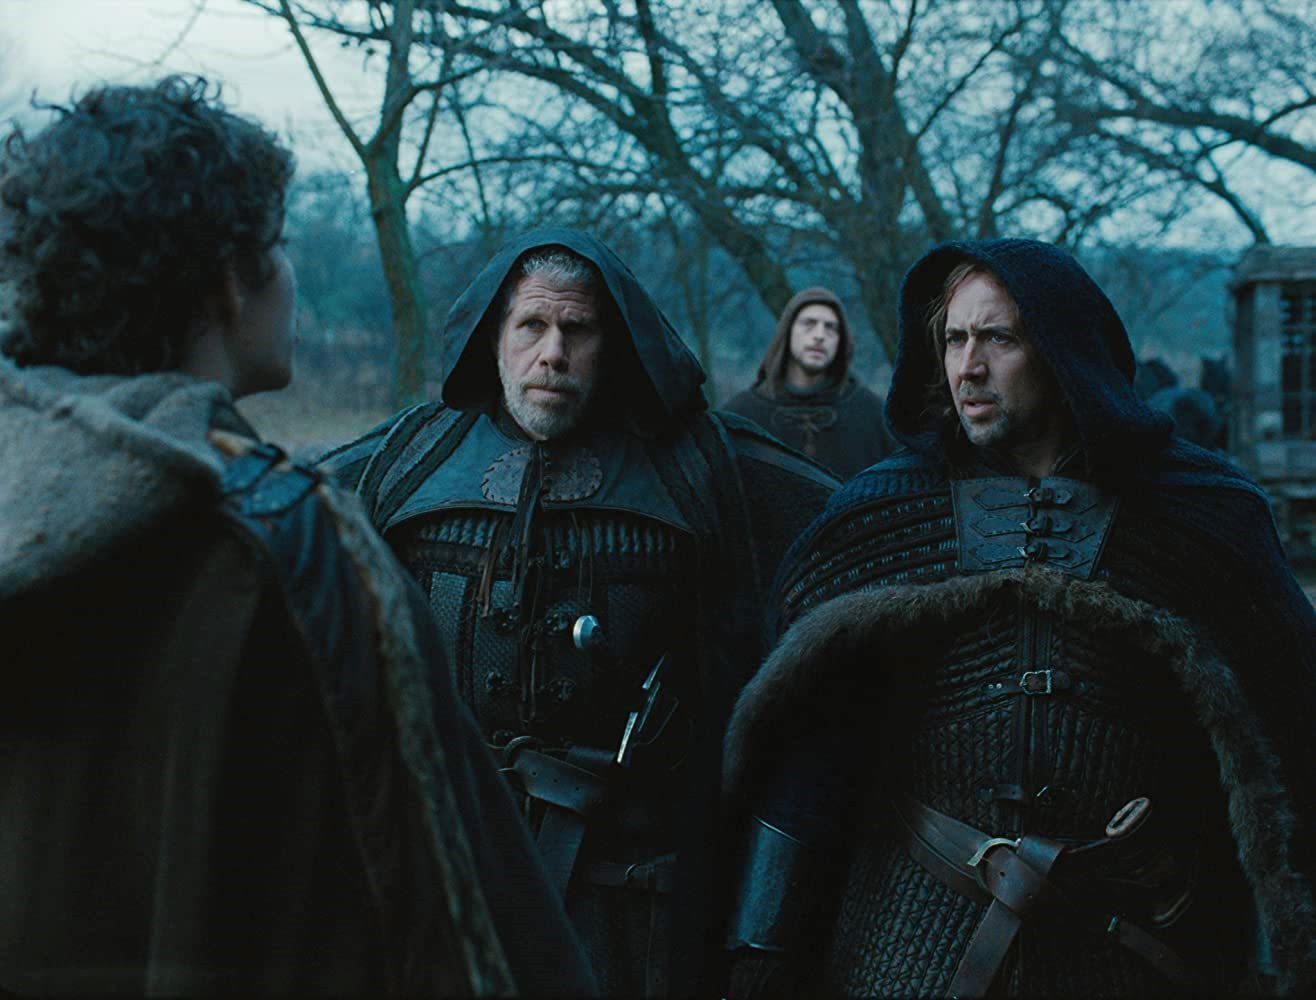 Kay (Robert Sheehan), Felson (Ron Perlman), Behmen (Nicolas Cage) and Debelzaq (Stephen Campbell Moore) in Season of the Witch (2011)